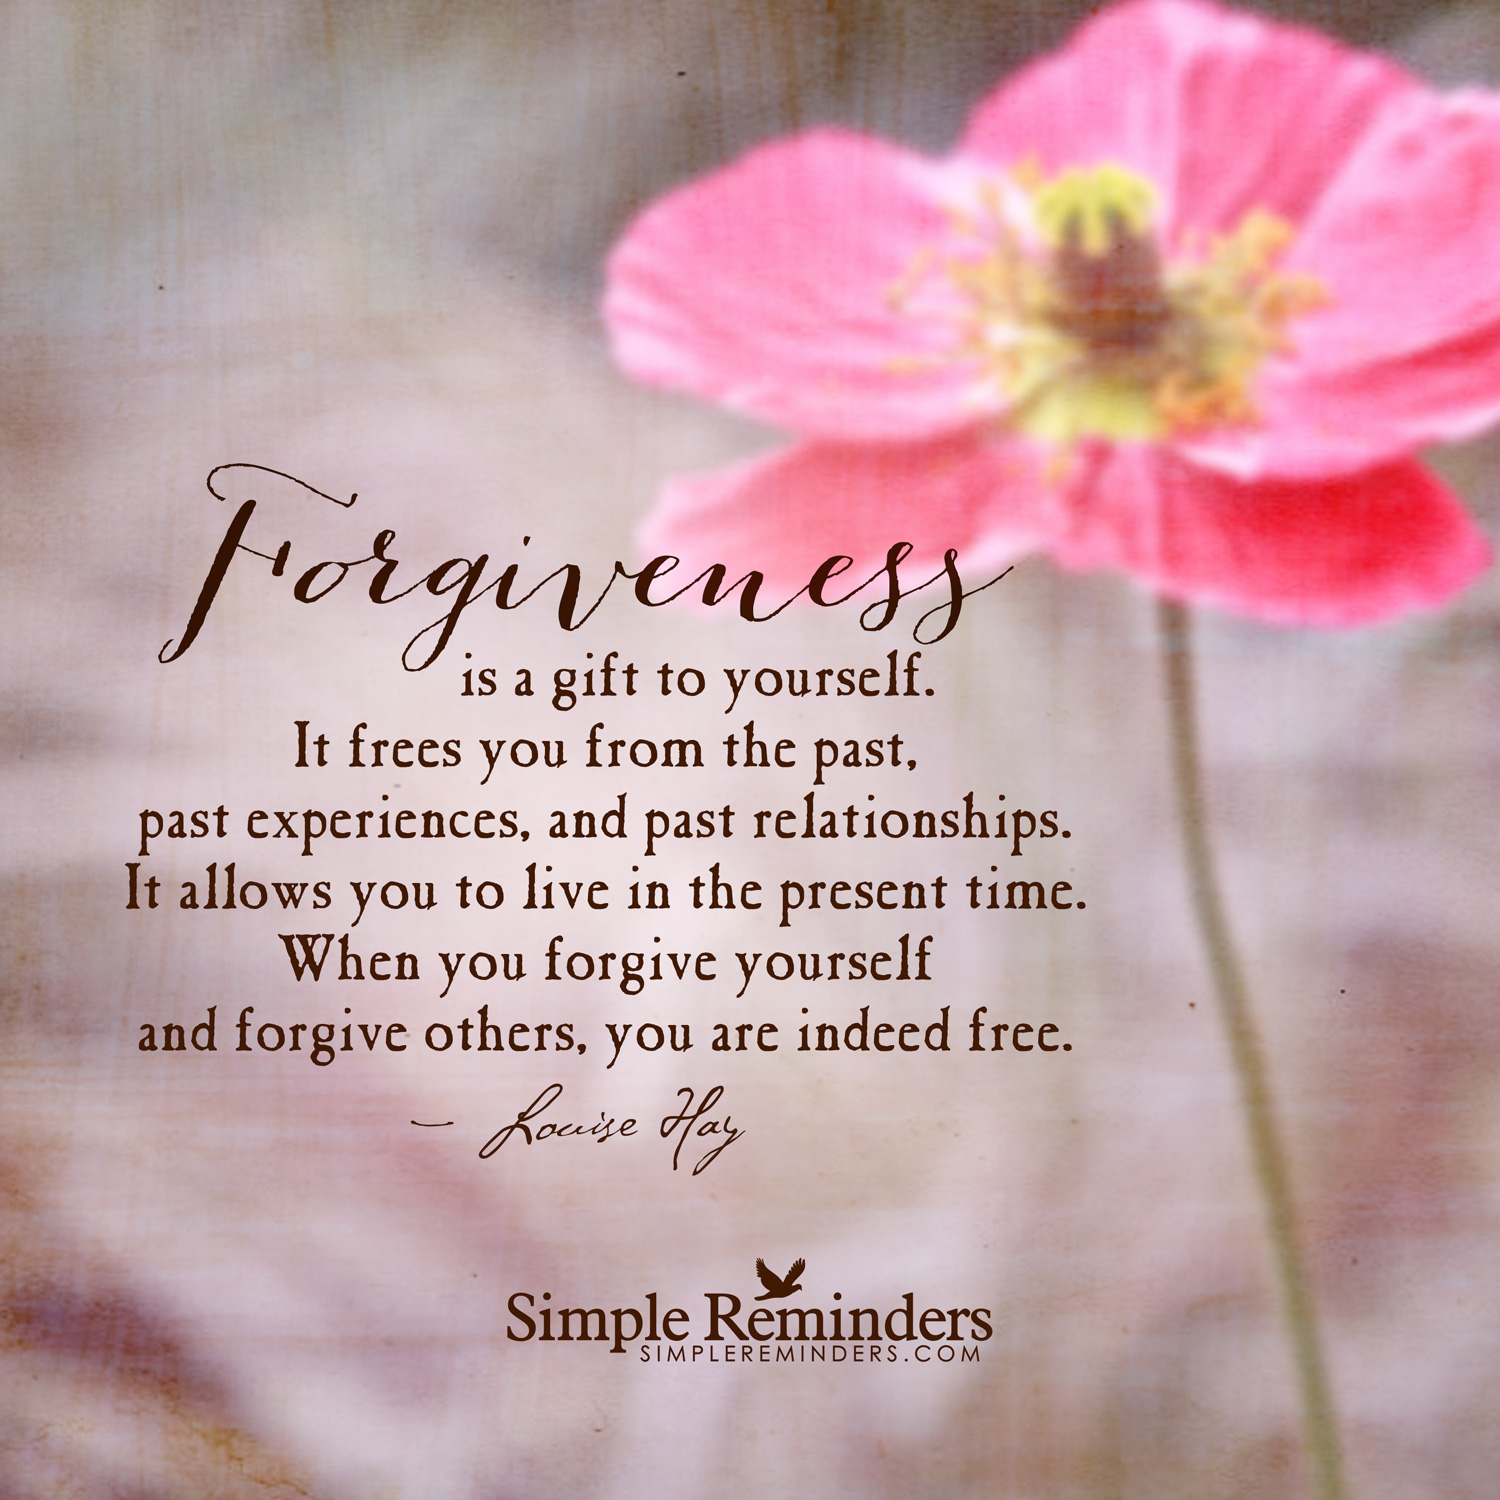 louise-hay-forgiveness-is-gift.jpg